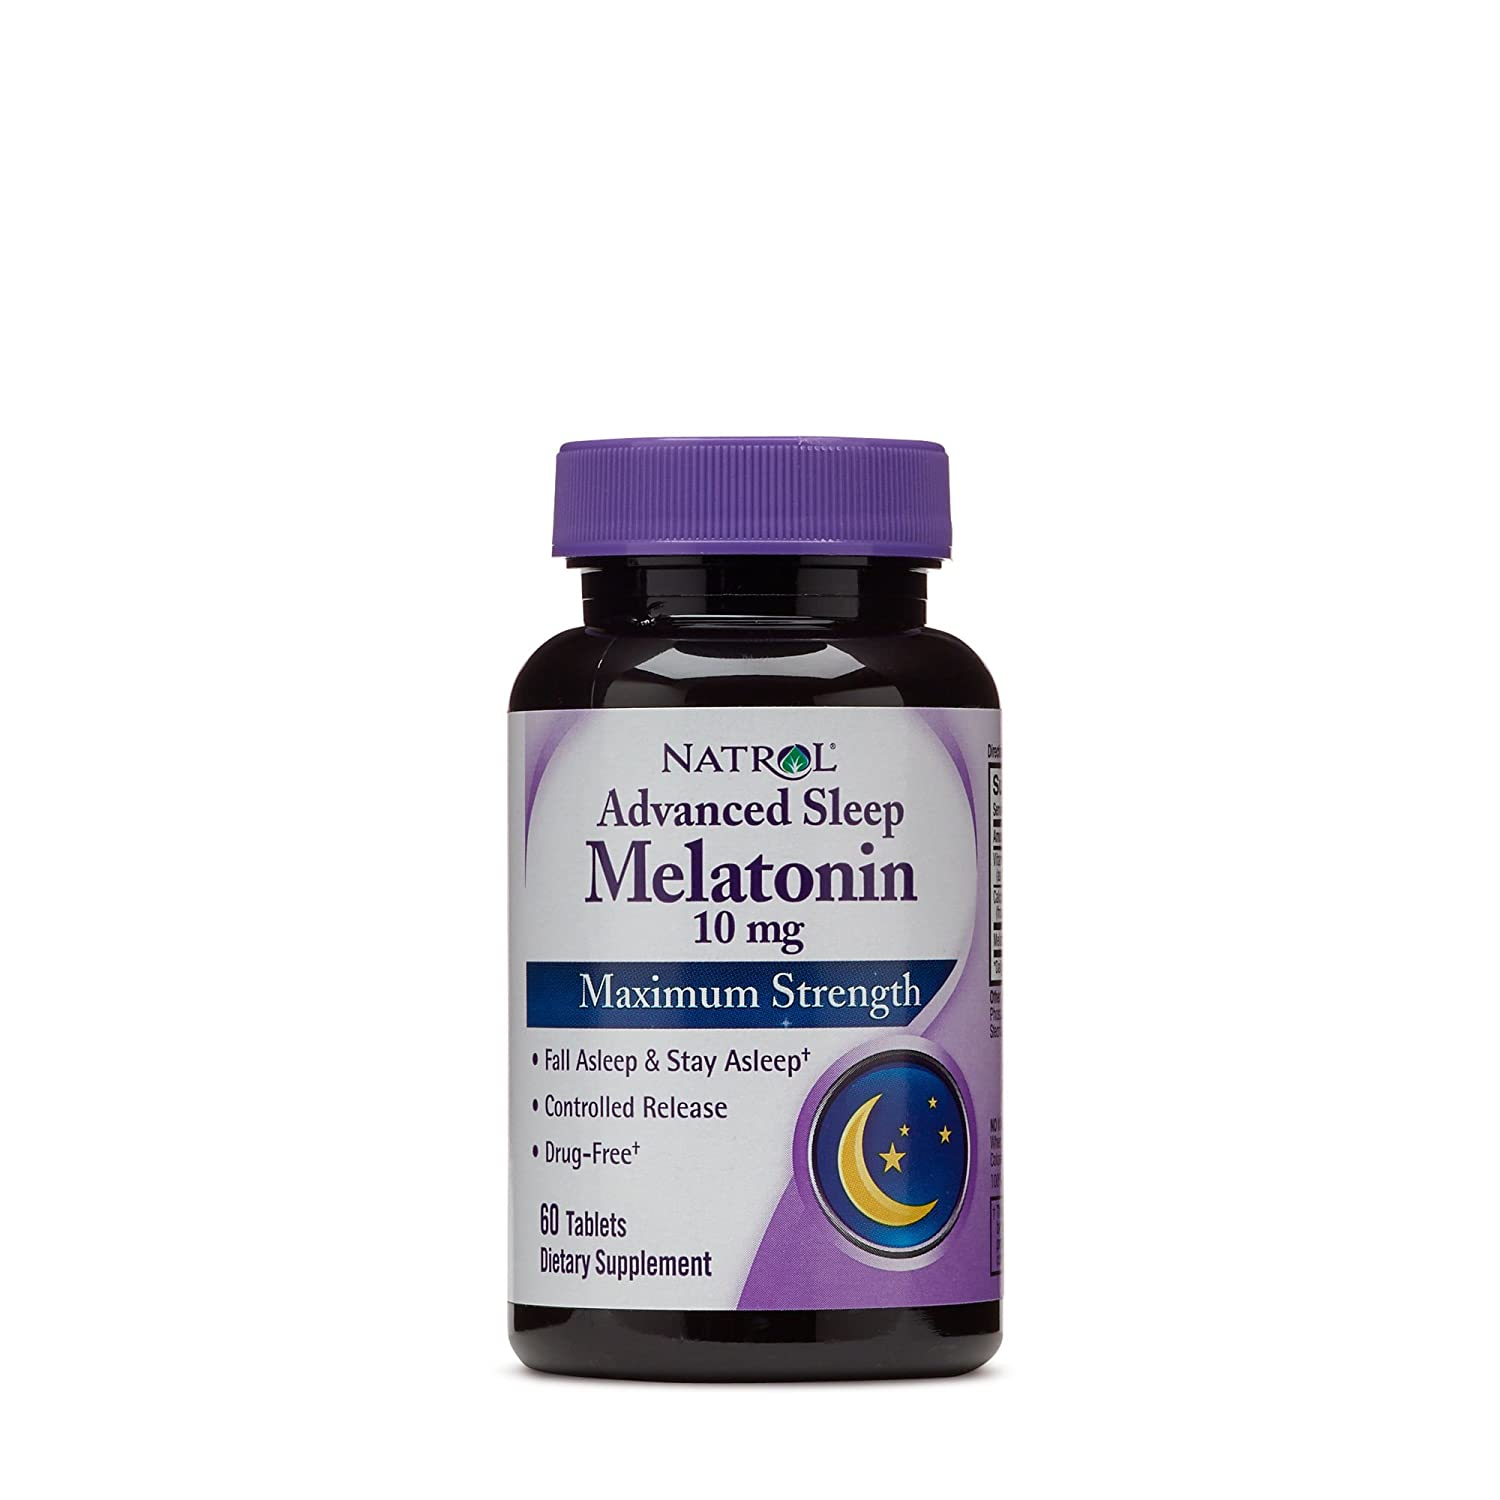 Amazon.com: Natrol Melatonin Sleep Maximum Strength fast dissolve Strawberry flavor 10 mg 60 Tablets (Pack of 2): Health & Personal Care